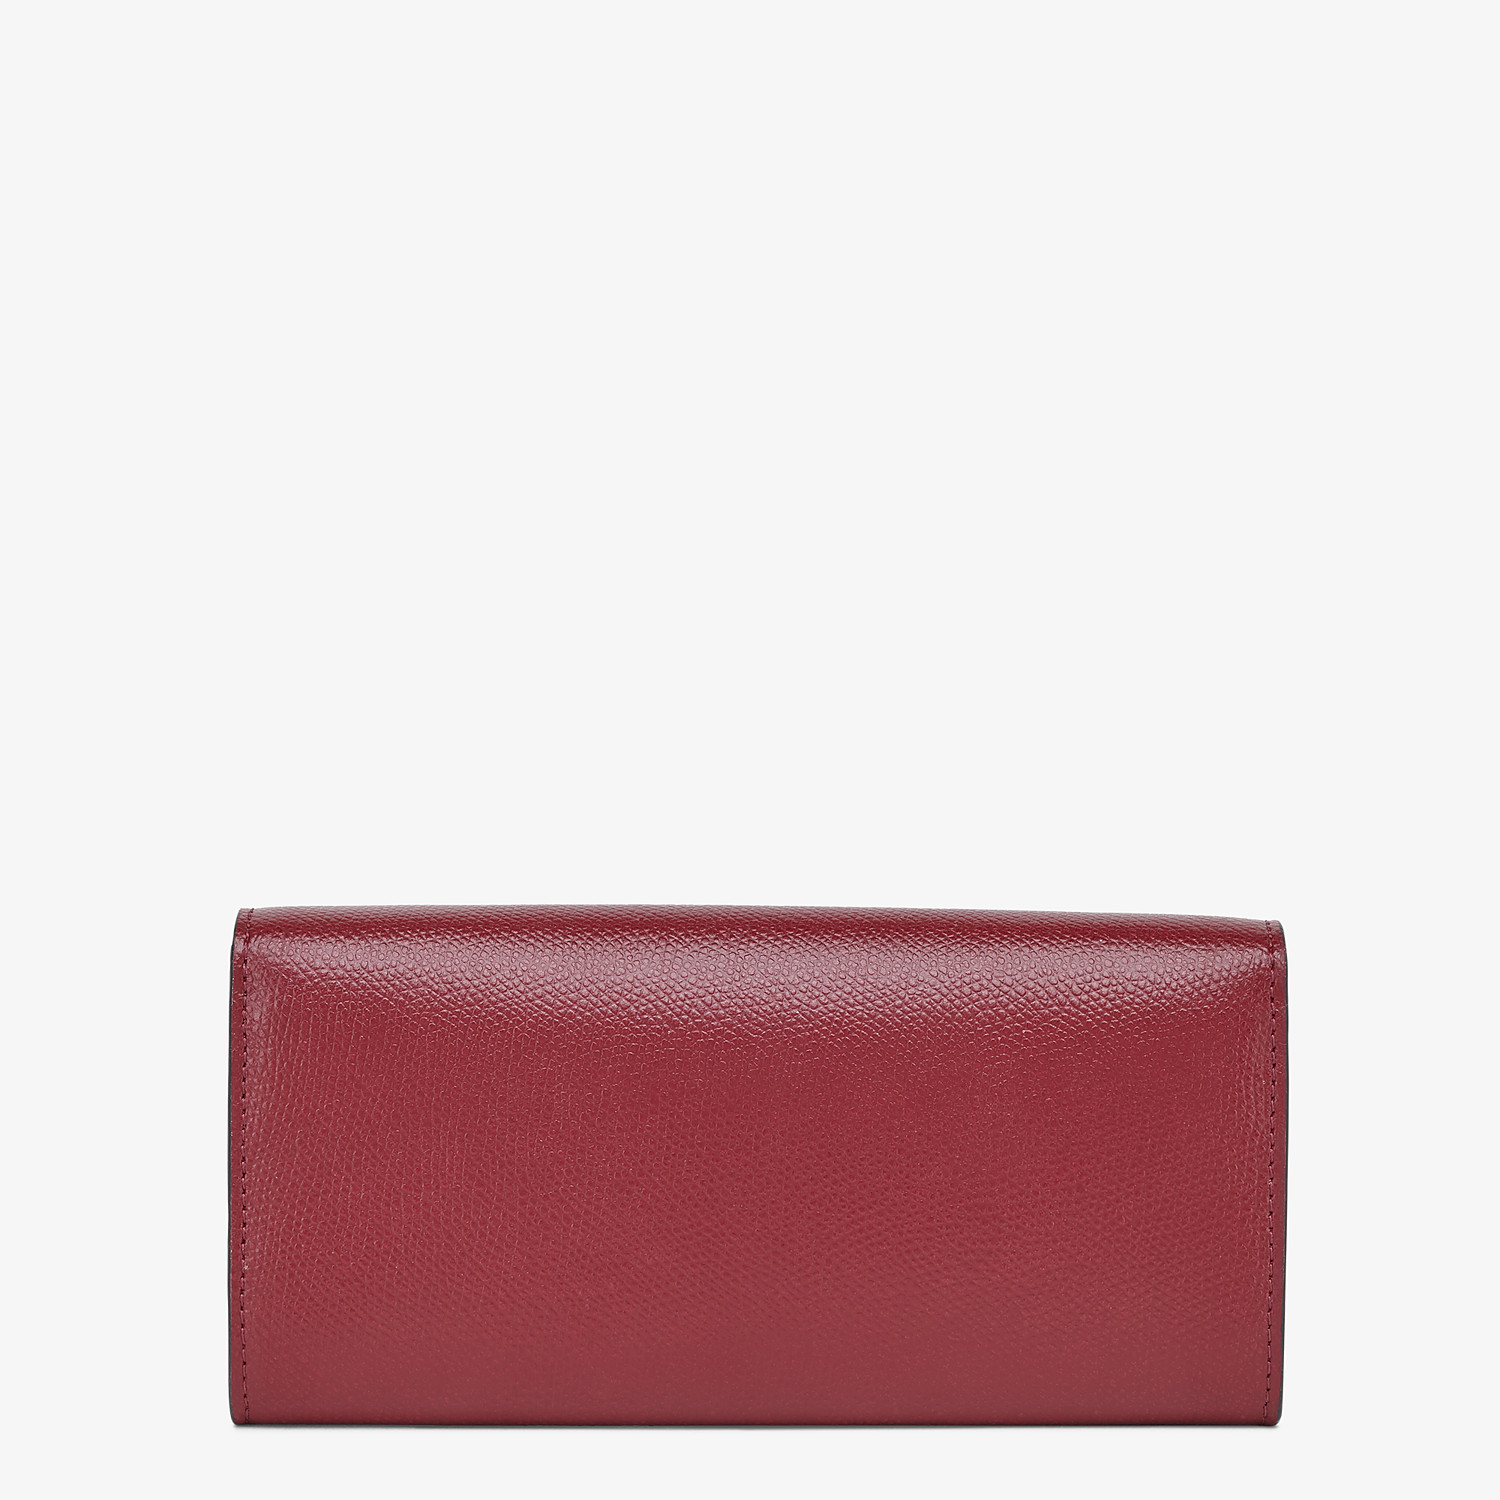 FENDI CONTINENTAL WITH CHAIN - Burgundy leather wallet - view 3 detail